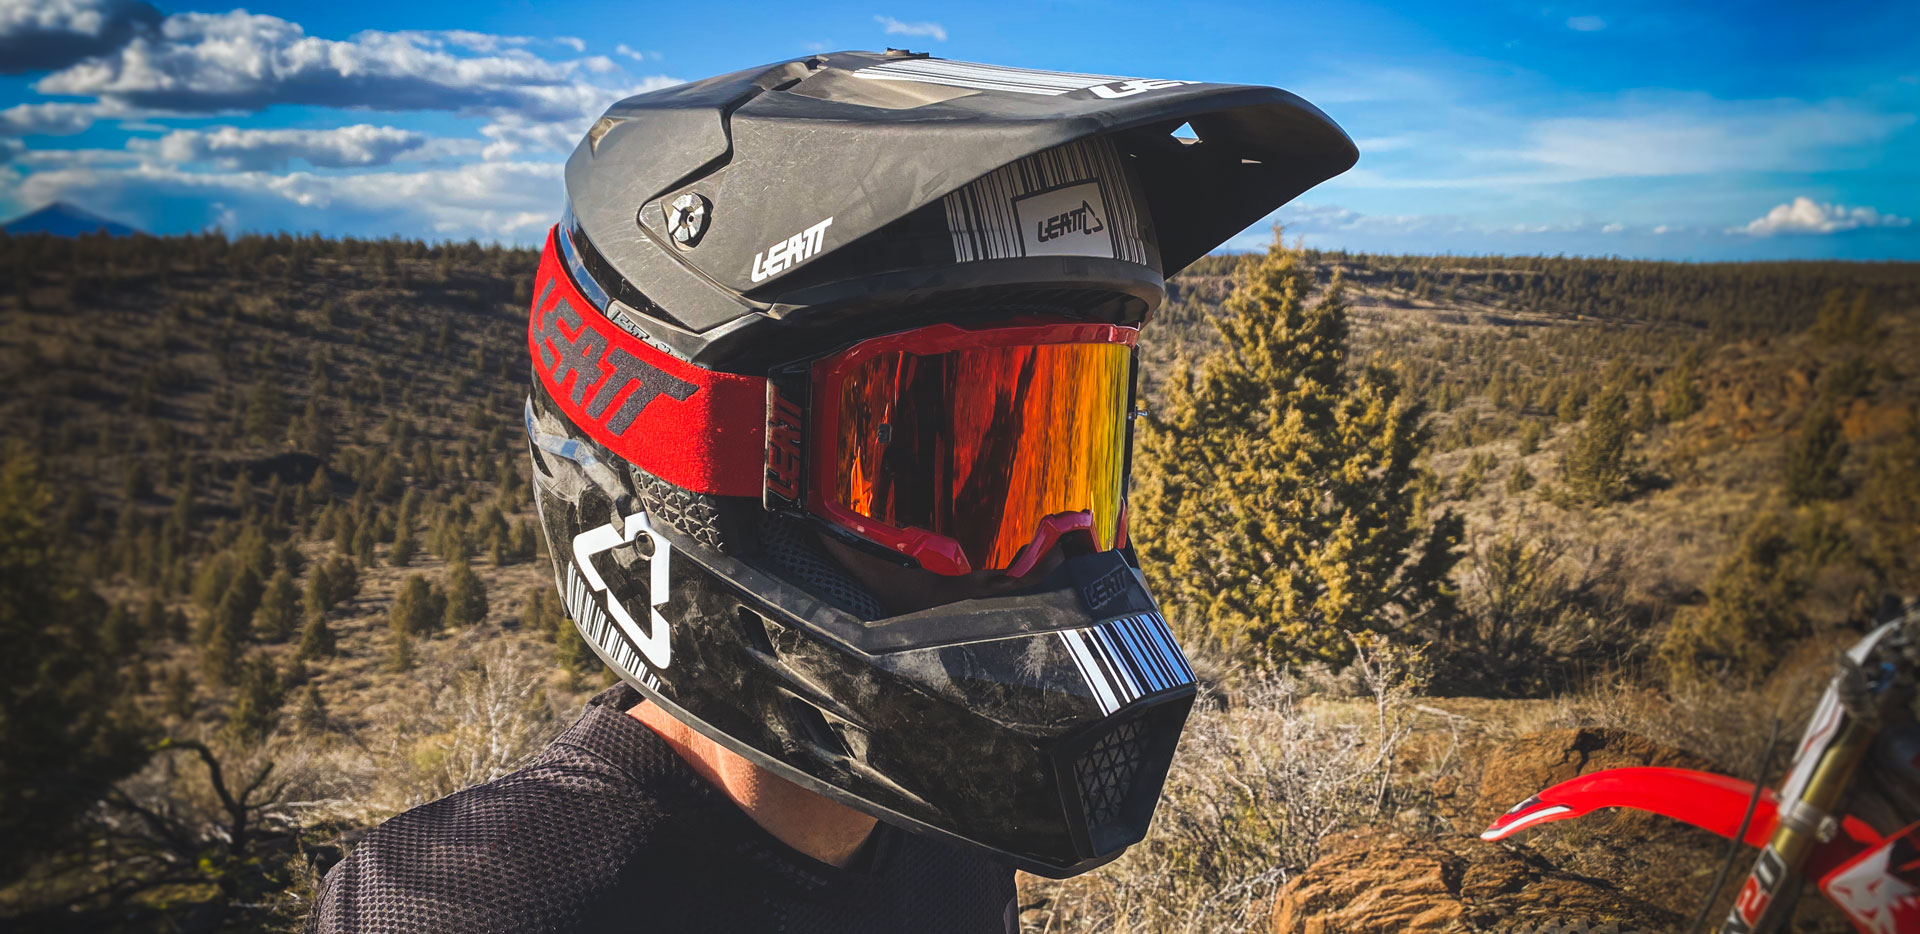 Leatt GPX 3.5 Helmet Review